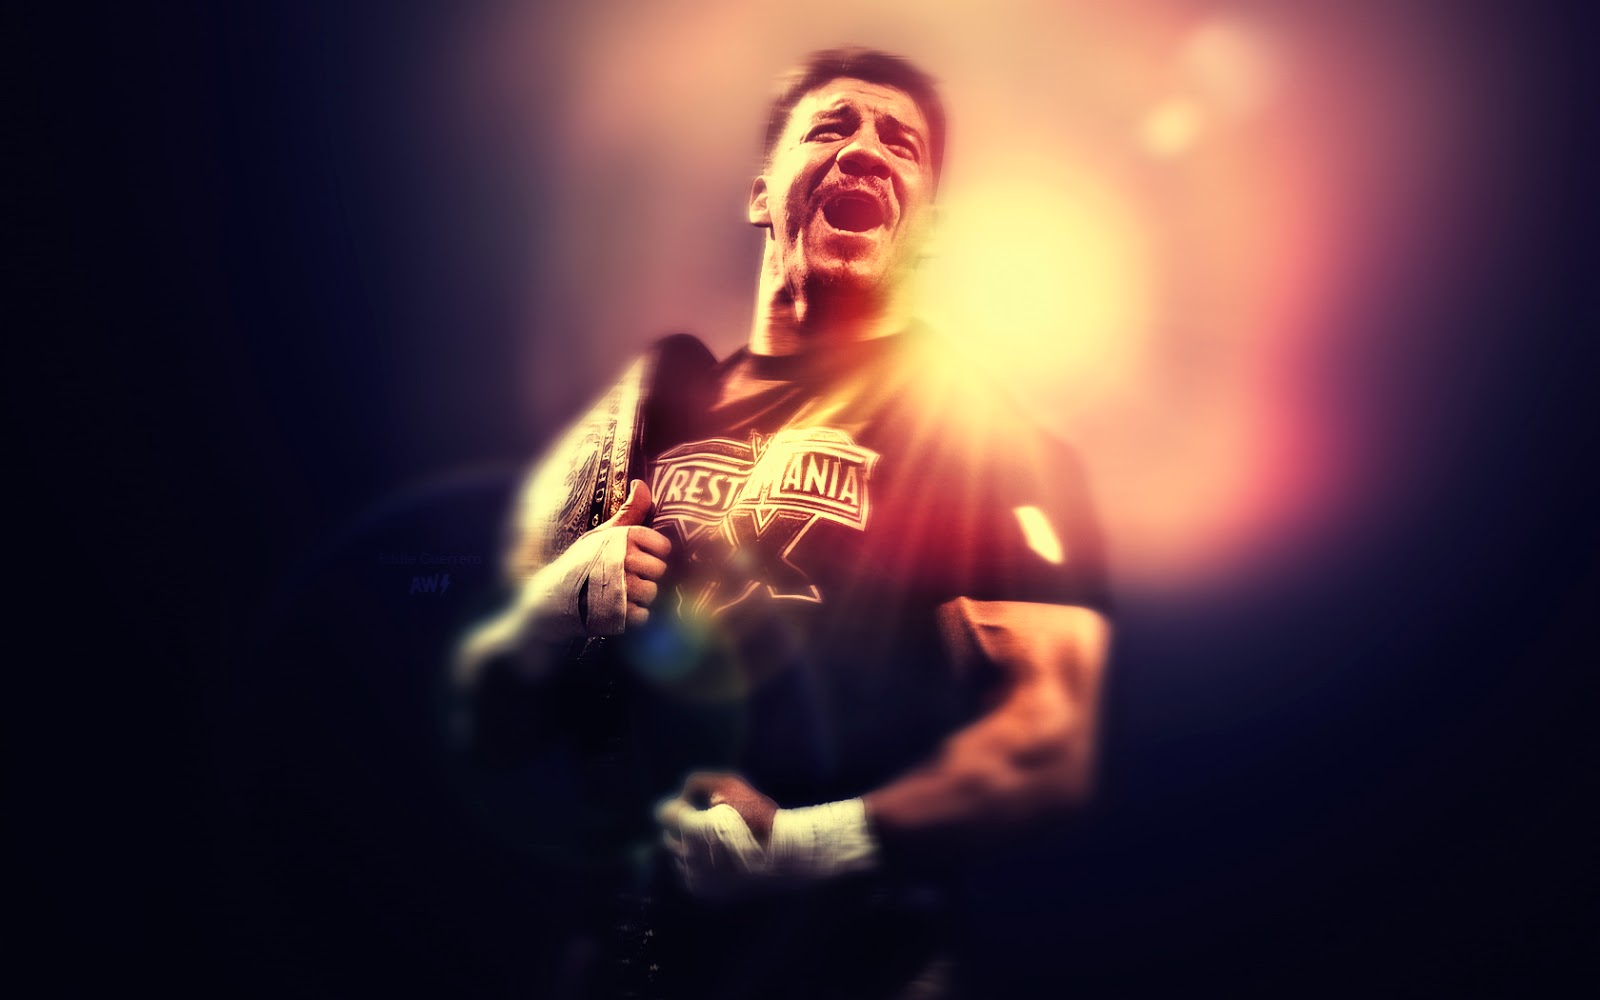 Eddie Guerrero Wallpapers and Background Images   stmednet 1600x1000